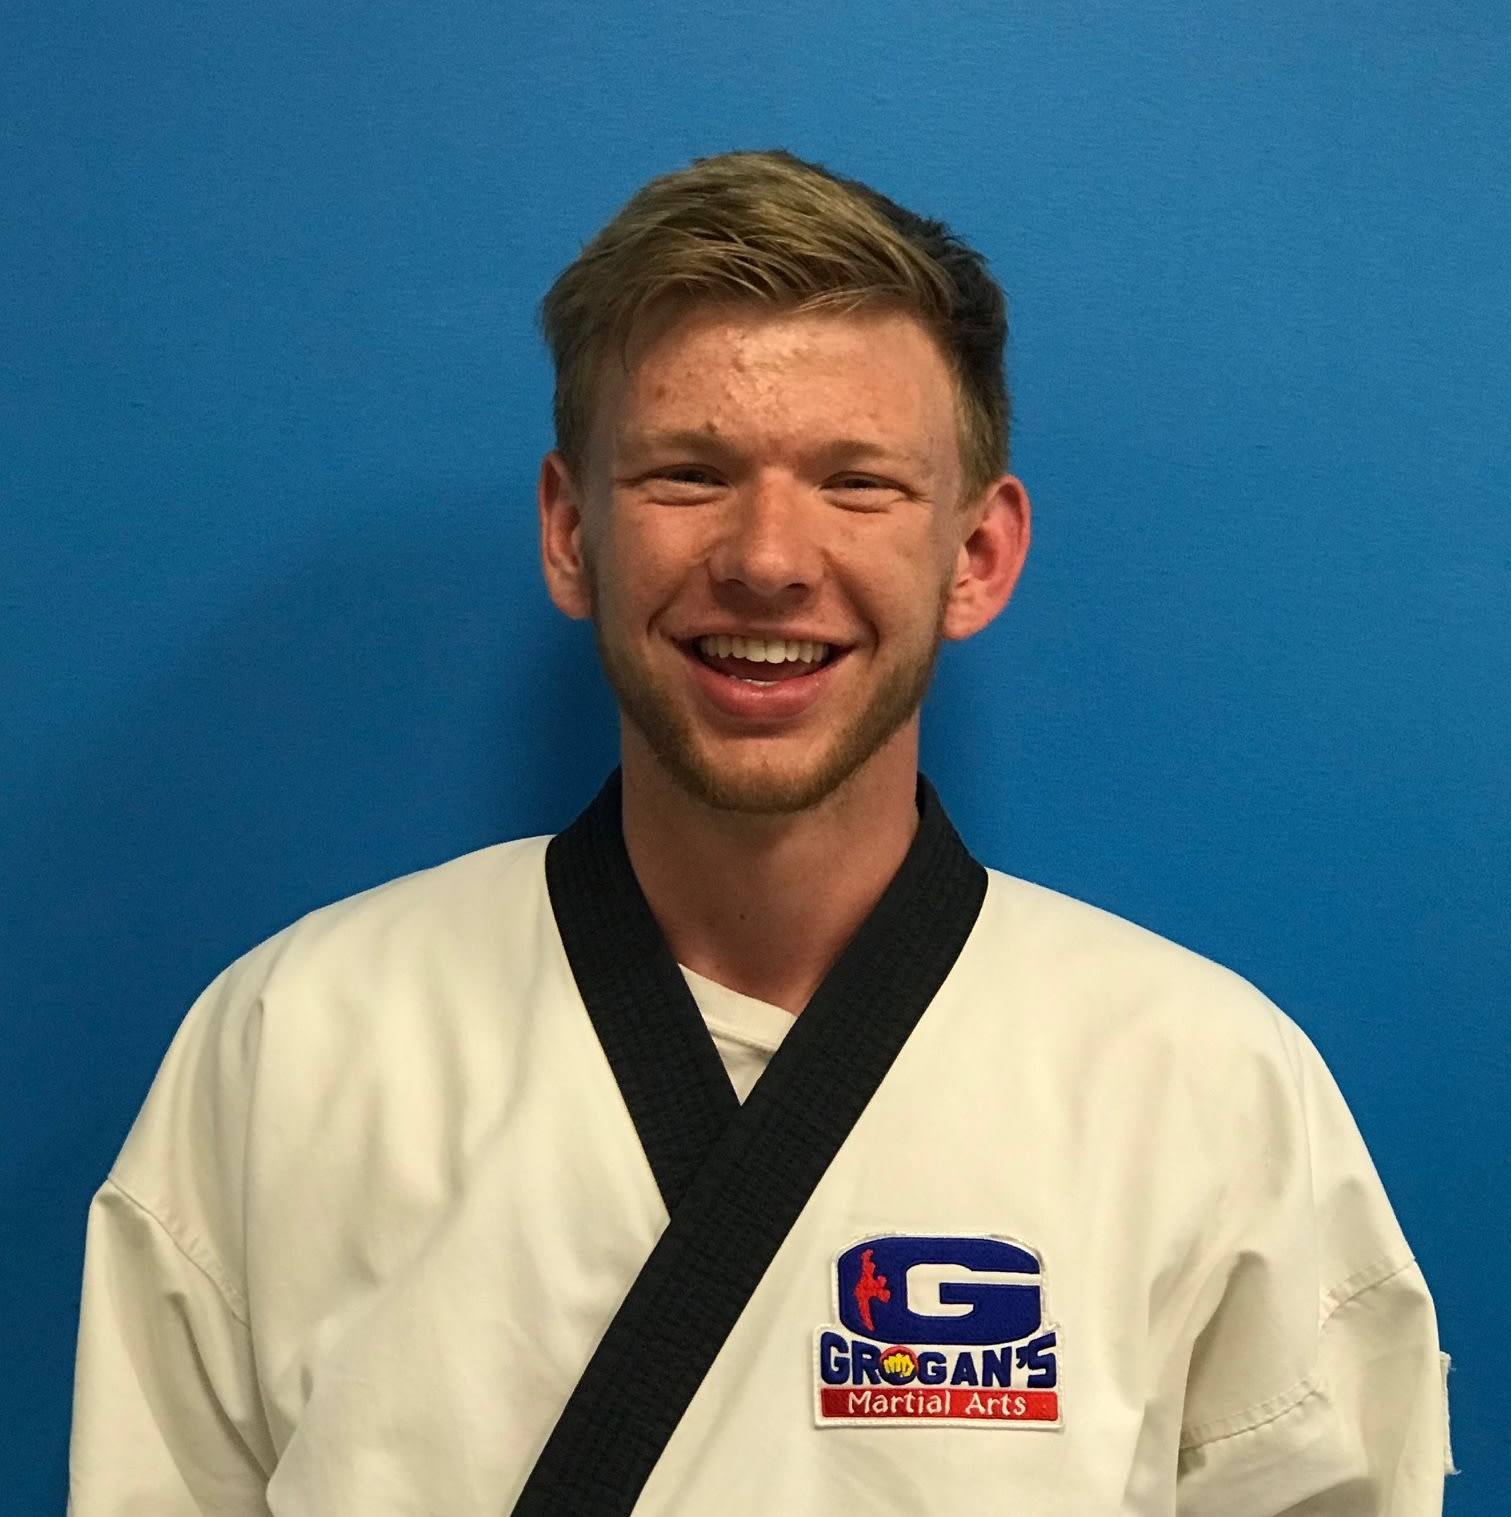 Daniel Pauk in Edwardsville - Grogan's Academy Of Martial Arts